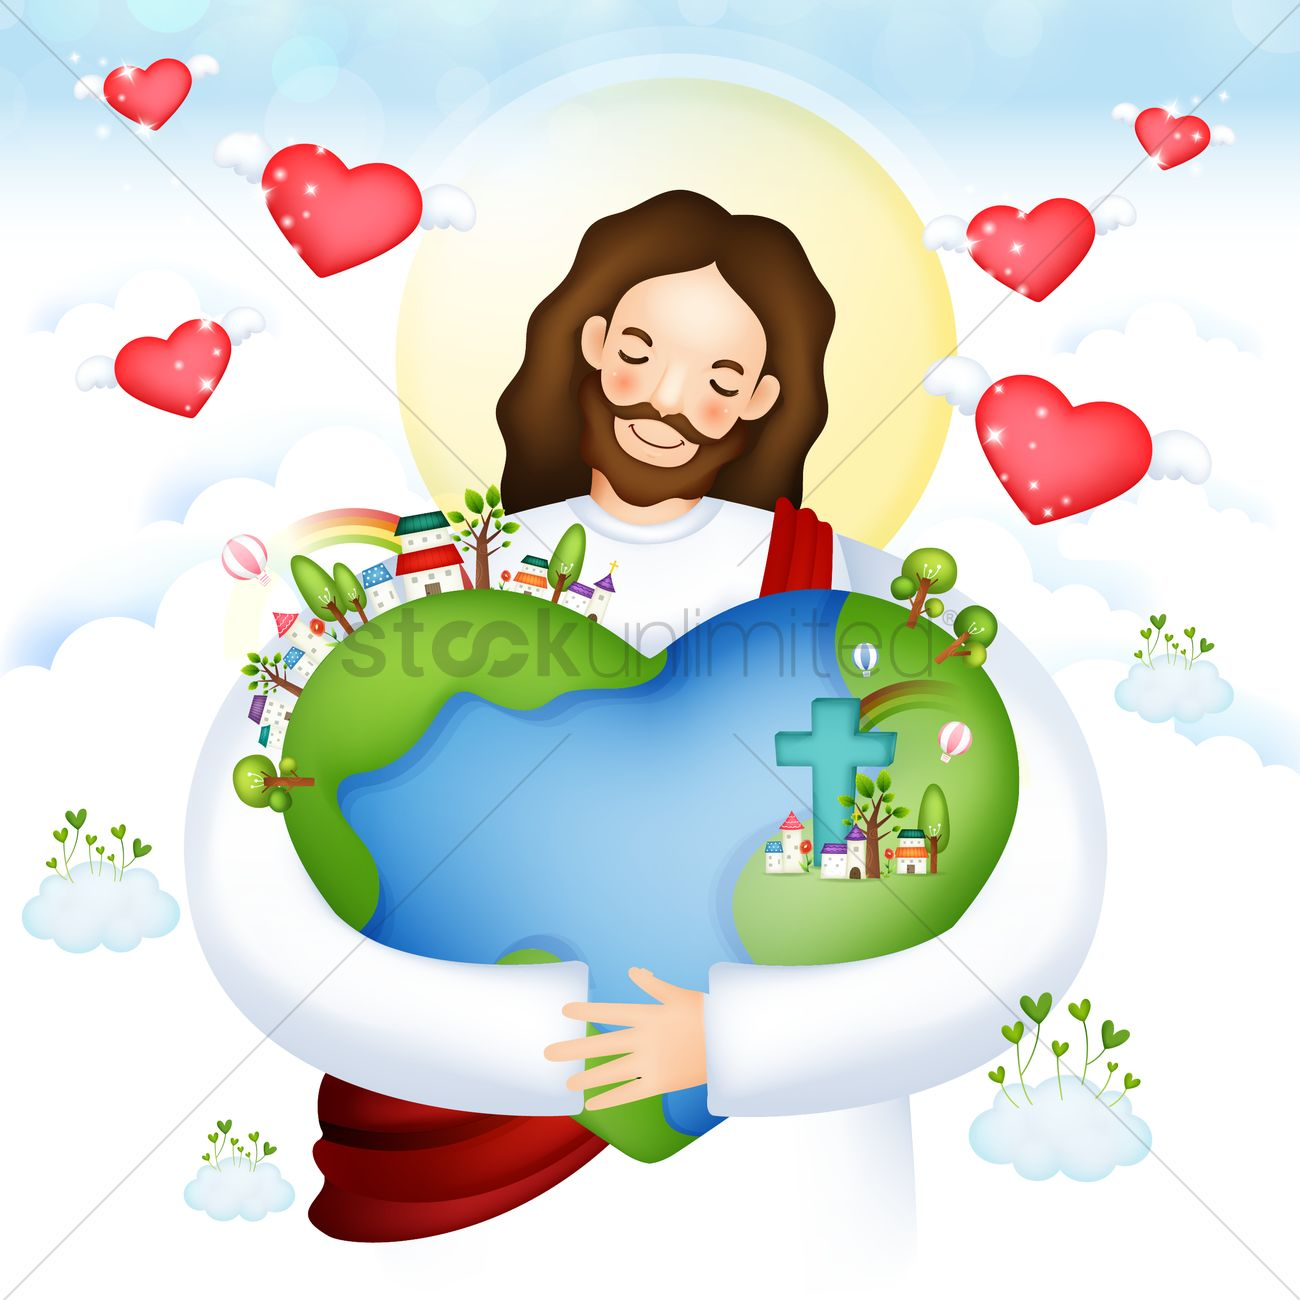 Jesus hugging planet earth Vector Image - 1492702 | StockUnlimited